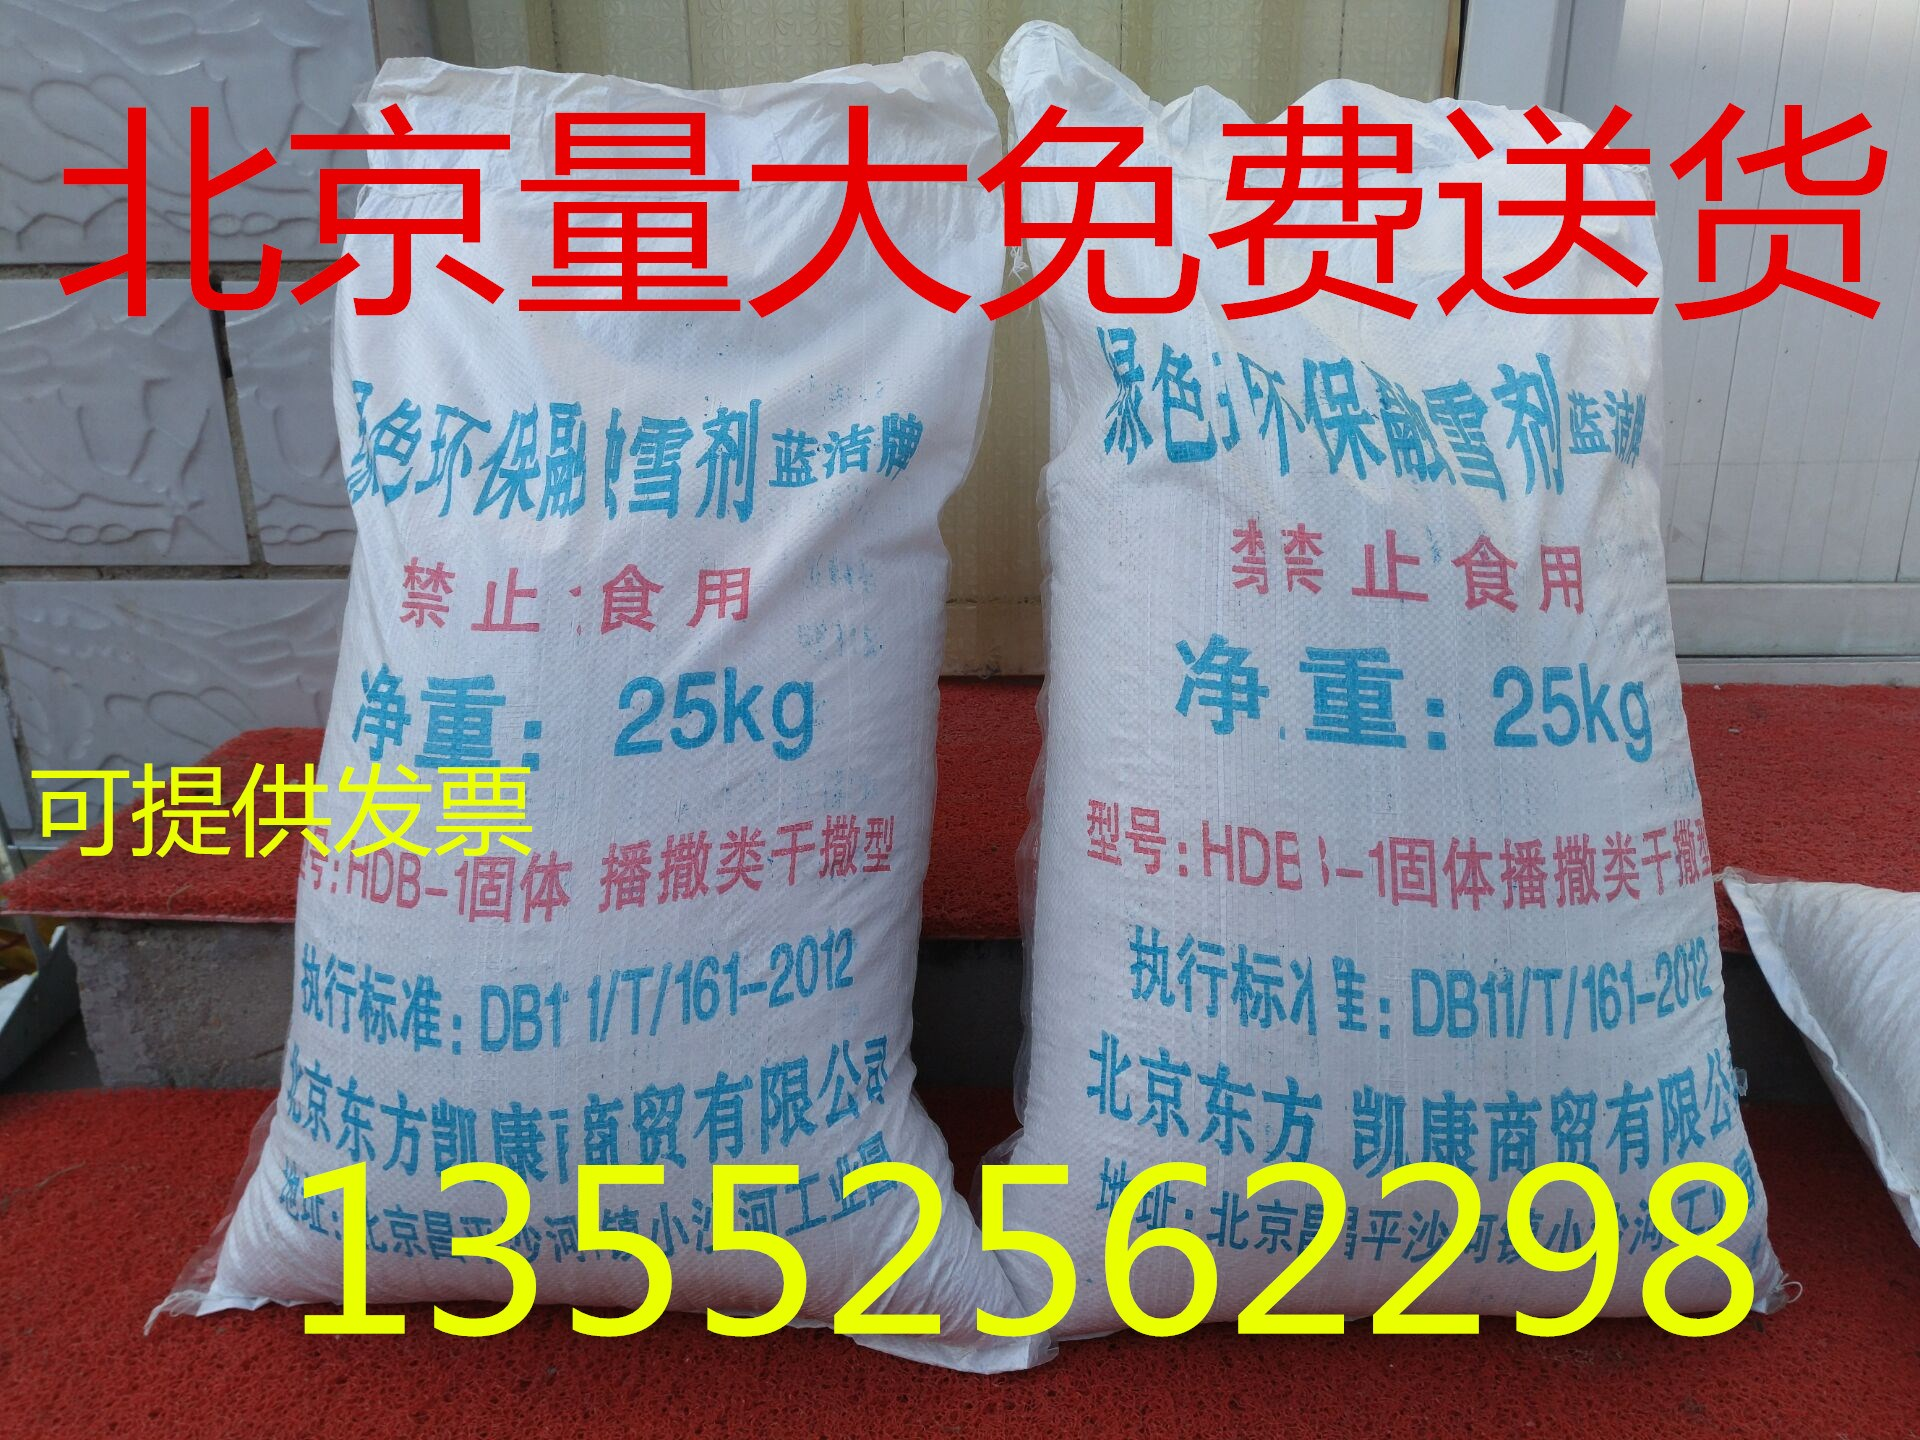 The snow melting agent residential road deicing agent of environmental protection industrial brine pipe direct shipping softening particles of salt salt